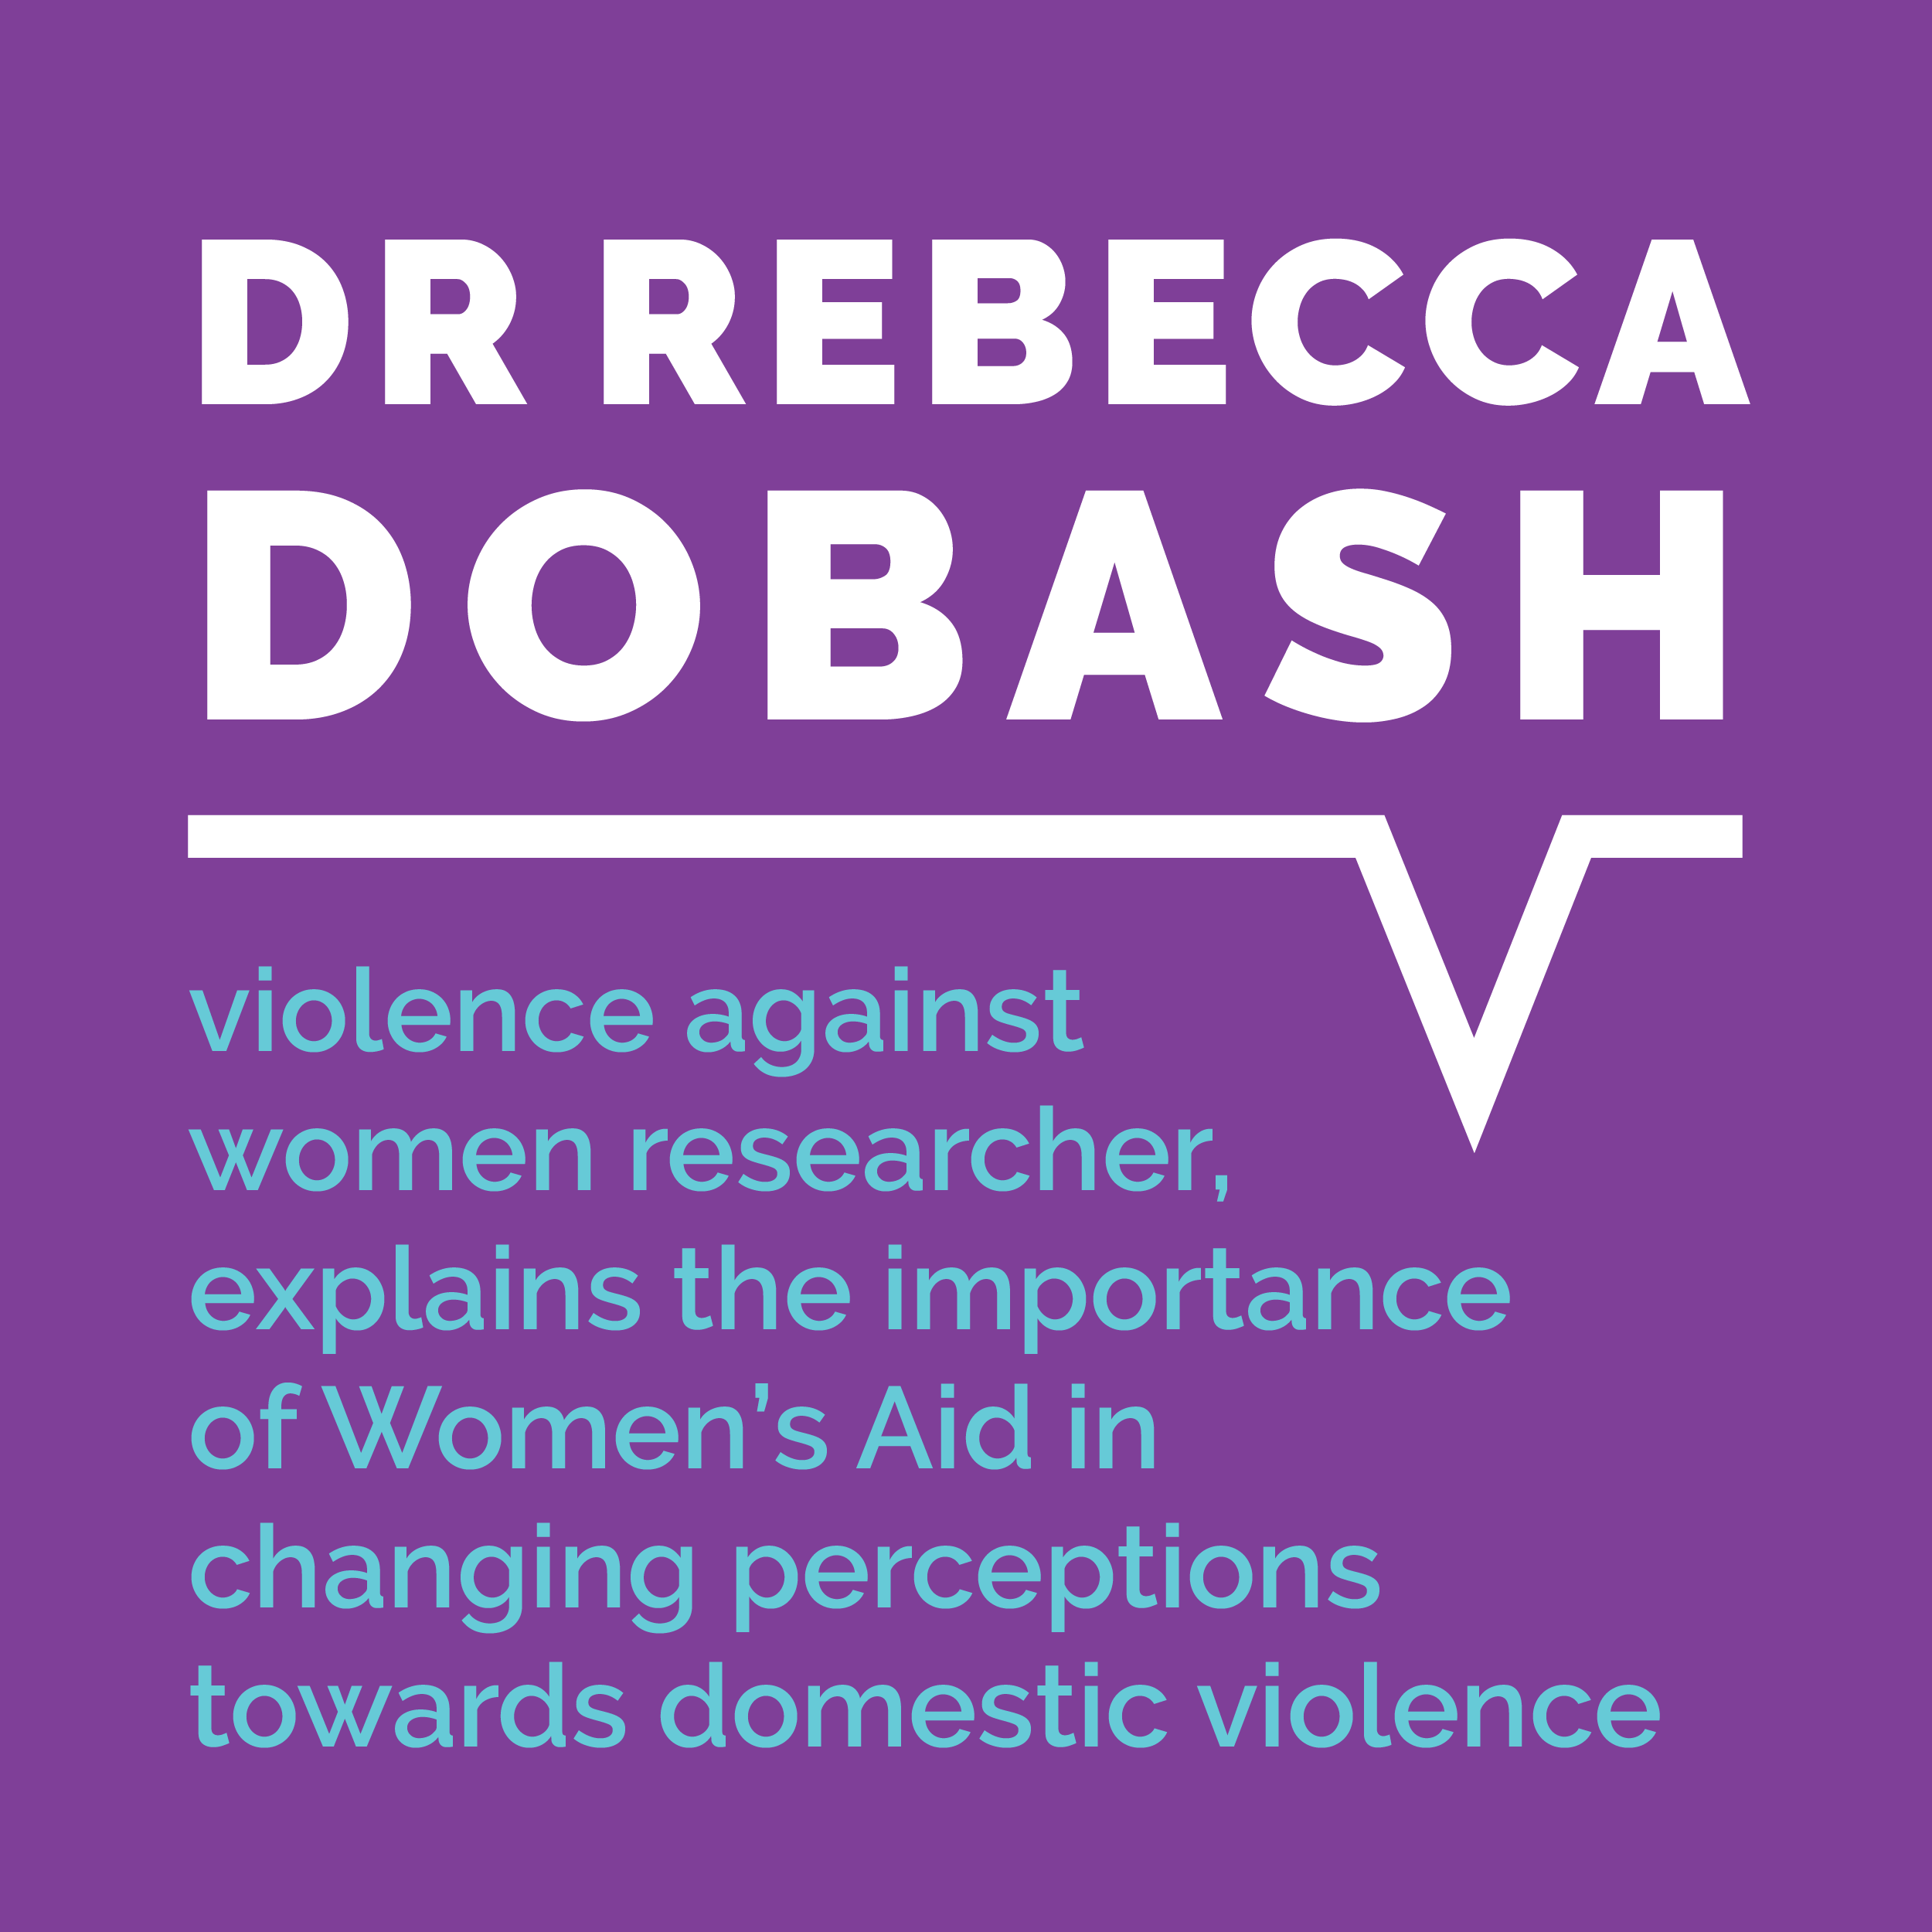 Dr Rebecca Dobash, violence against women researcher, explains the importance of Women's Aid in changing perceptions towards domestic violence